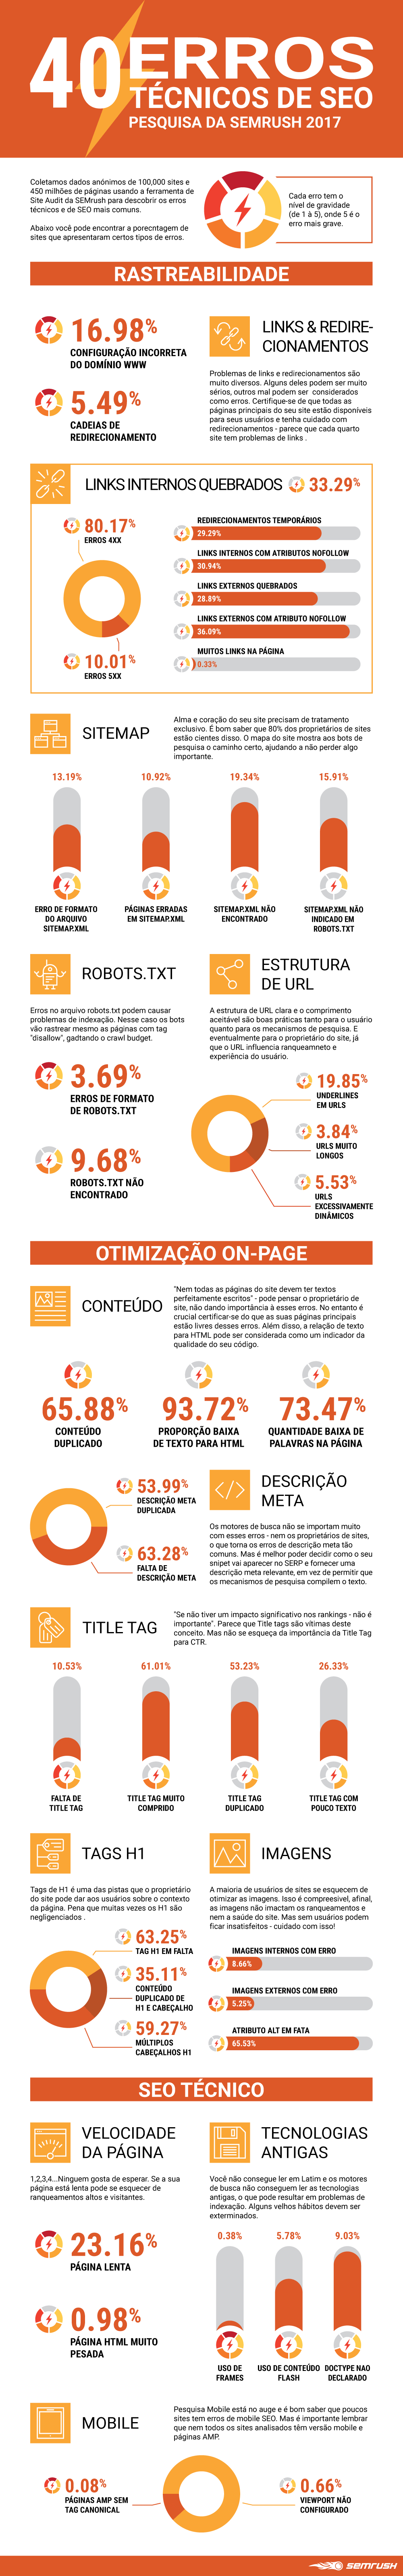 40-technical-seo-mistakes-semrush-study-2017-pt.png